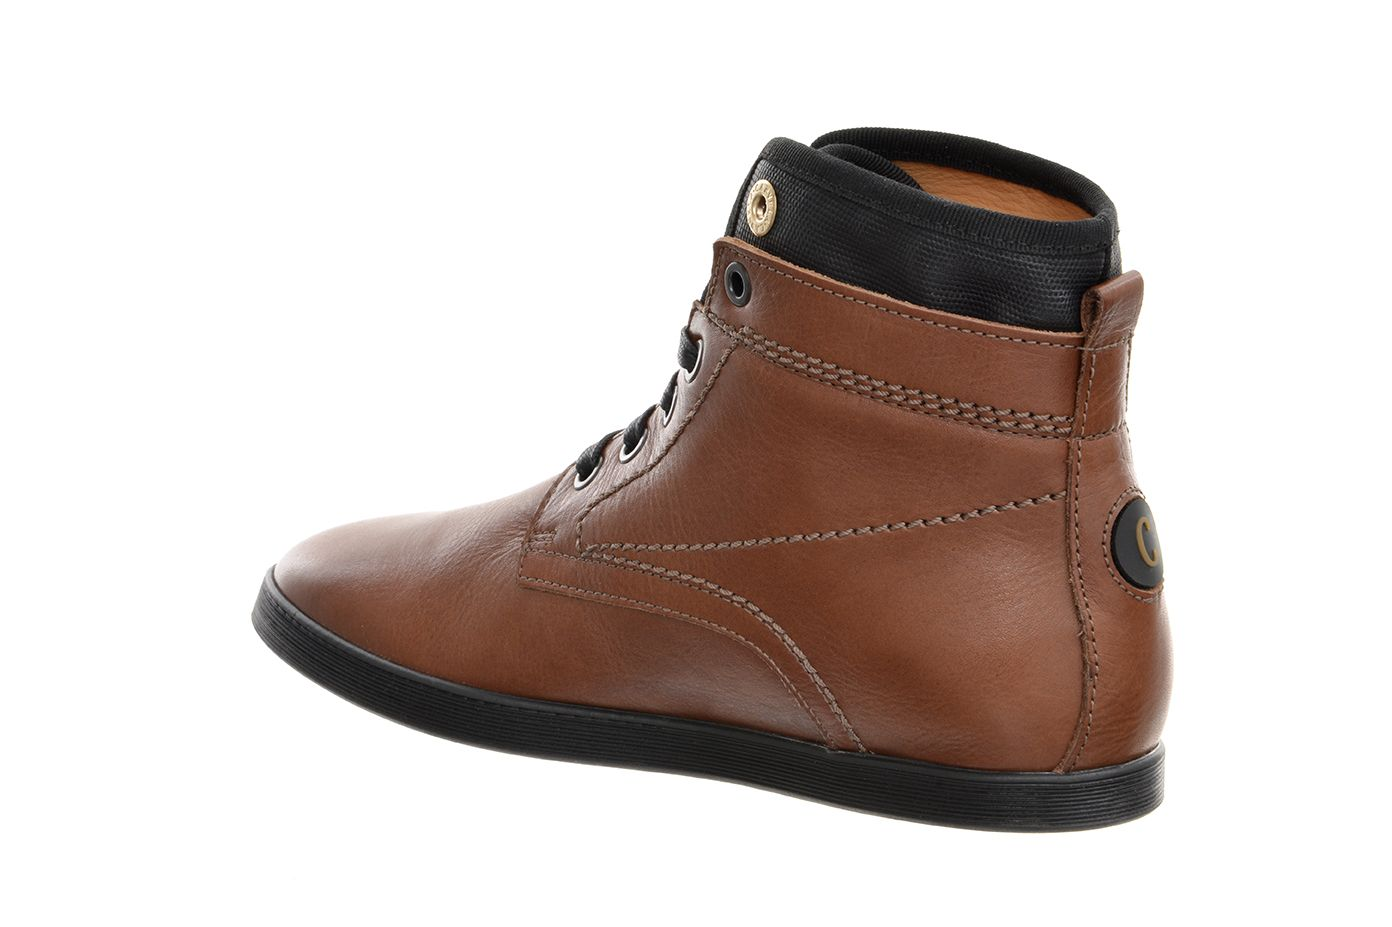 7645158ff51 Carvela Weekend Casual Boot - Boots - Styles - Women   Shoes in 2019 ...